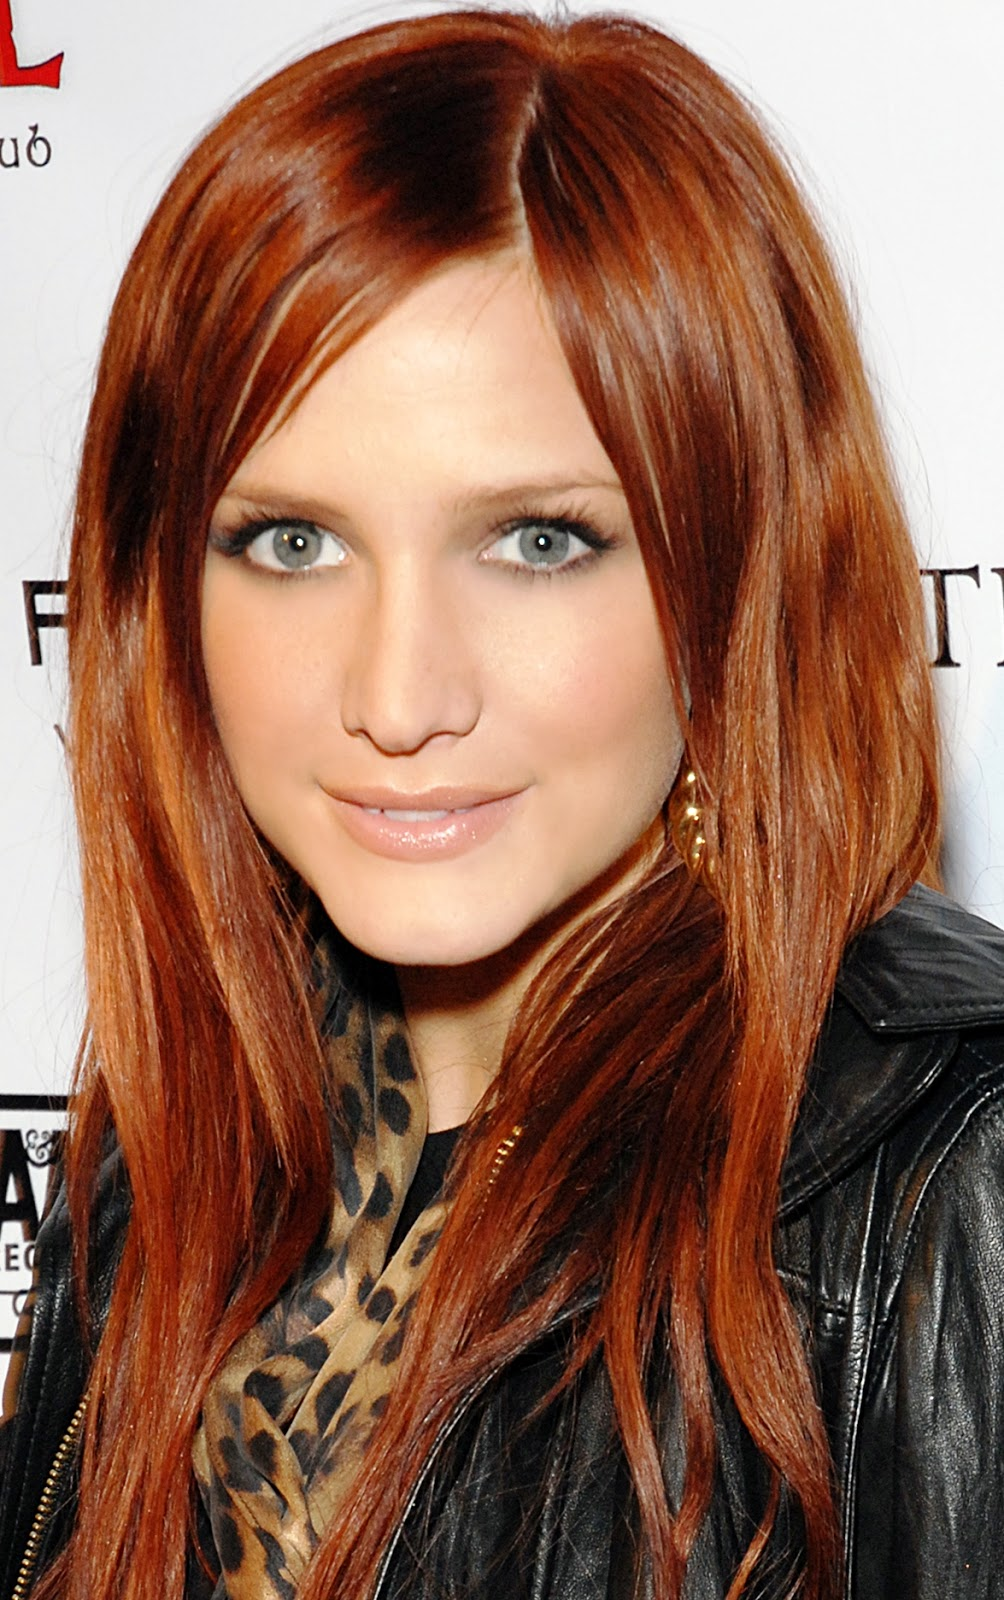 Global Pictures Gallery: Ashlee Simpson Ashlee Simpson